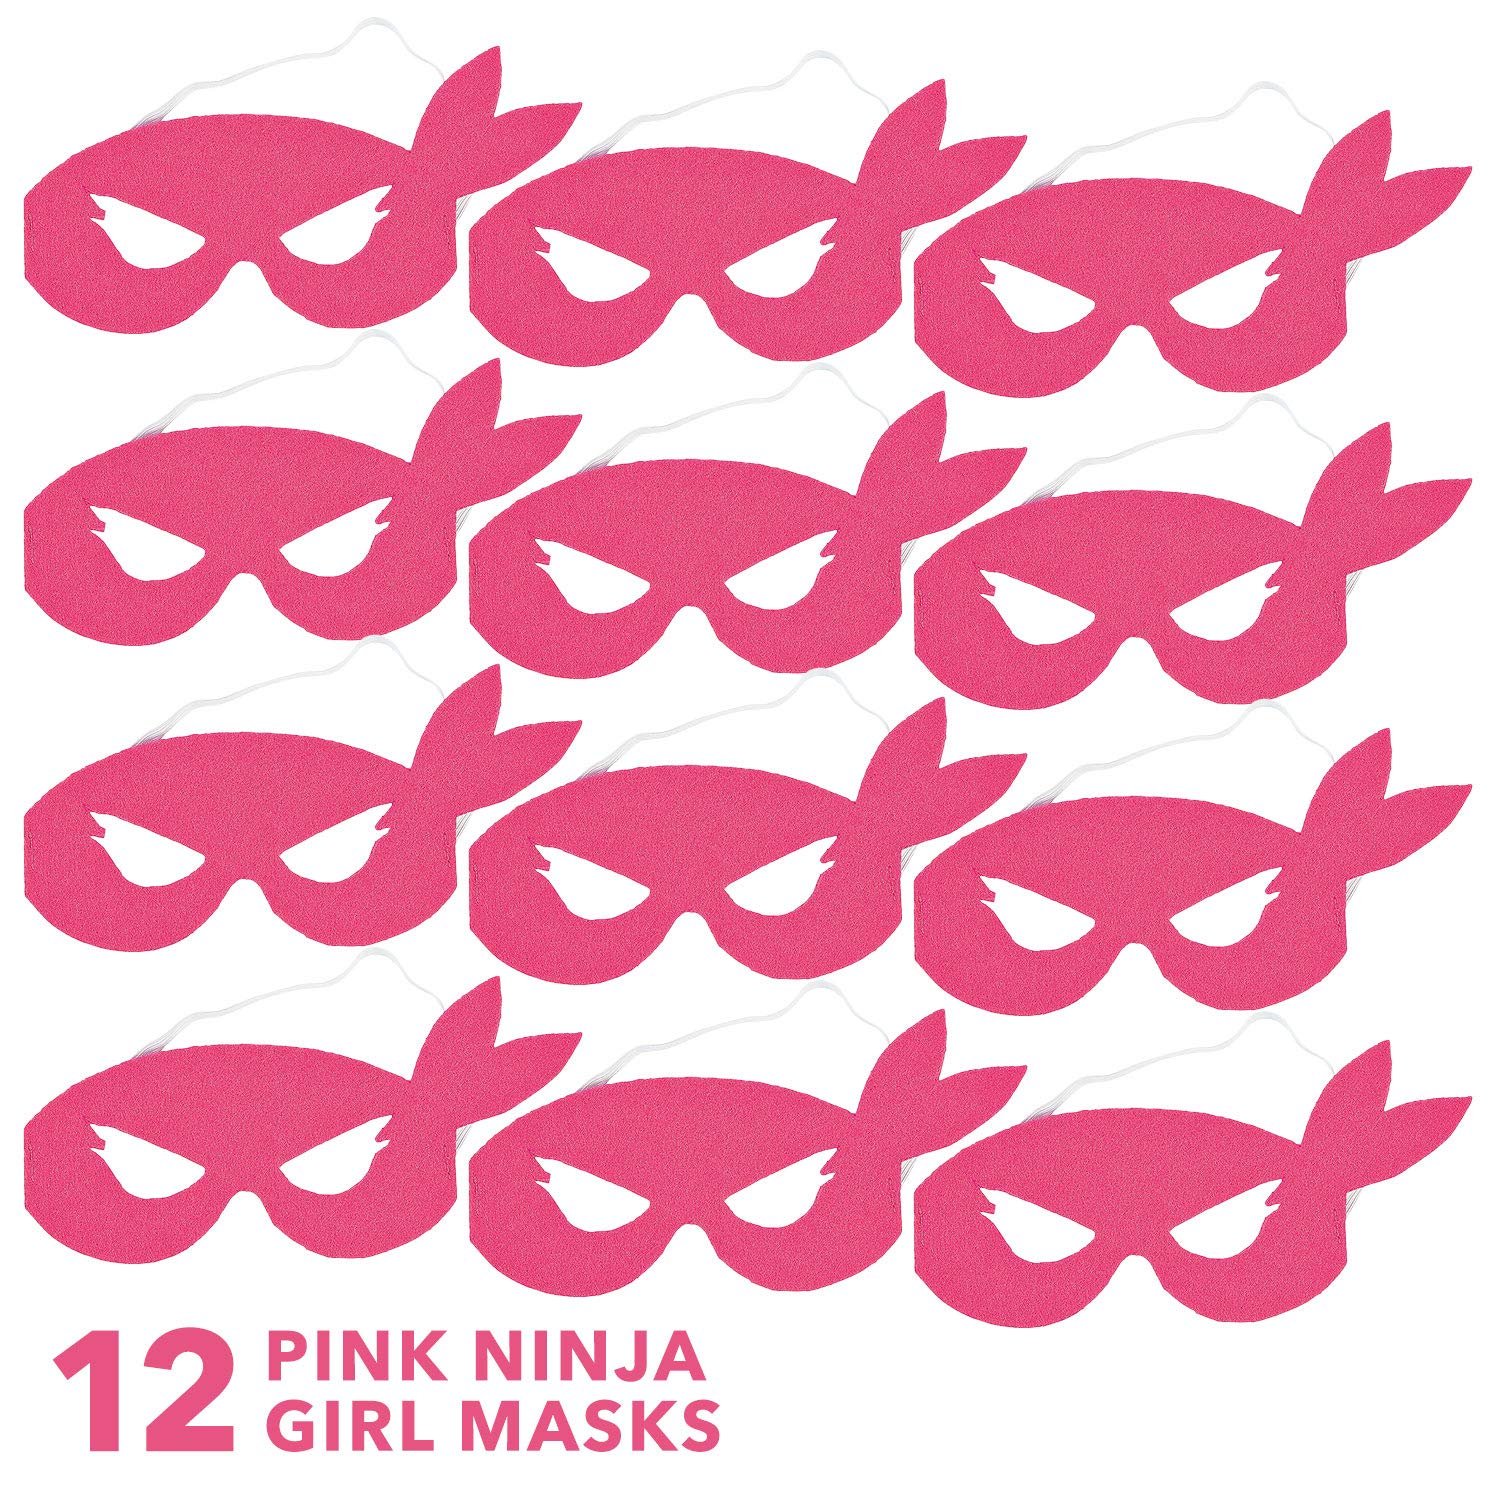 Amazon.com: Pink Ninja Masks for Kids - Set of 12 Costume ...